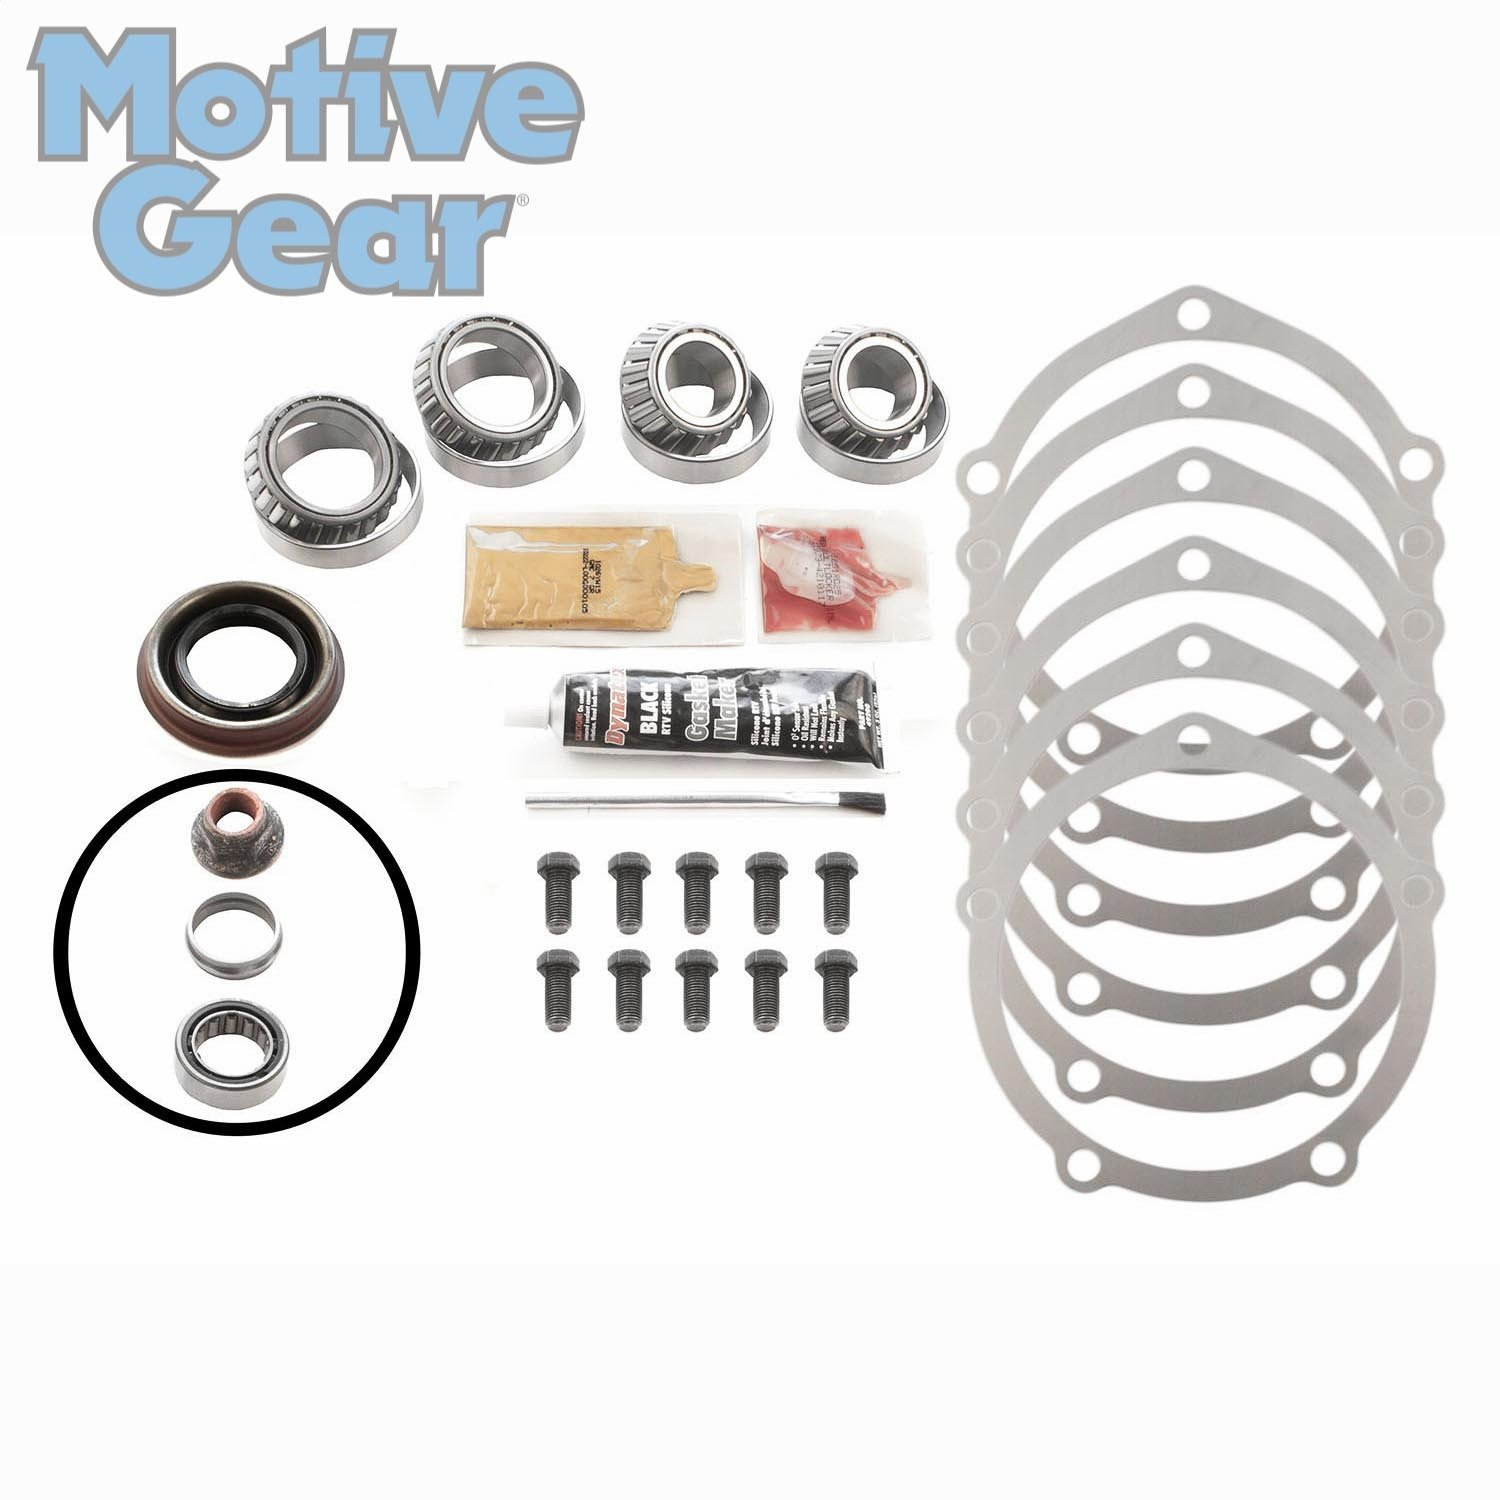 Motive Gear R9RMK Master Bearing Kit with Koyo Bearings, Ford 9' 2.891' BORE LM10291 Ford 9 2.891 BORE LM10291